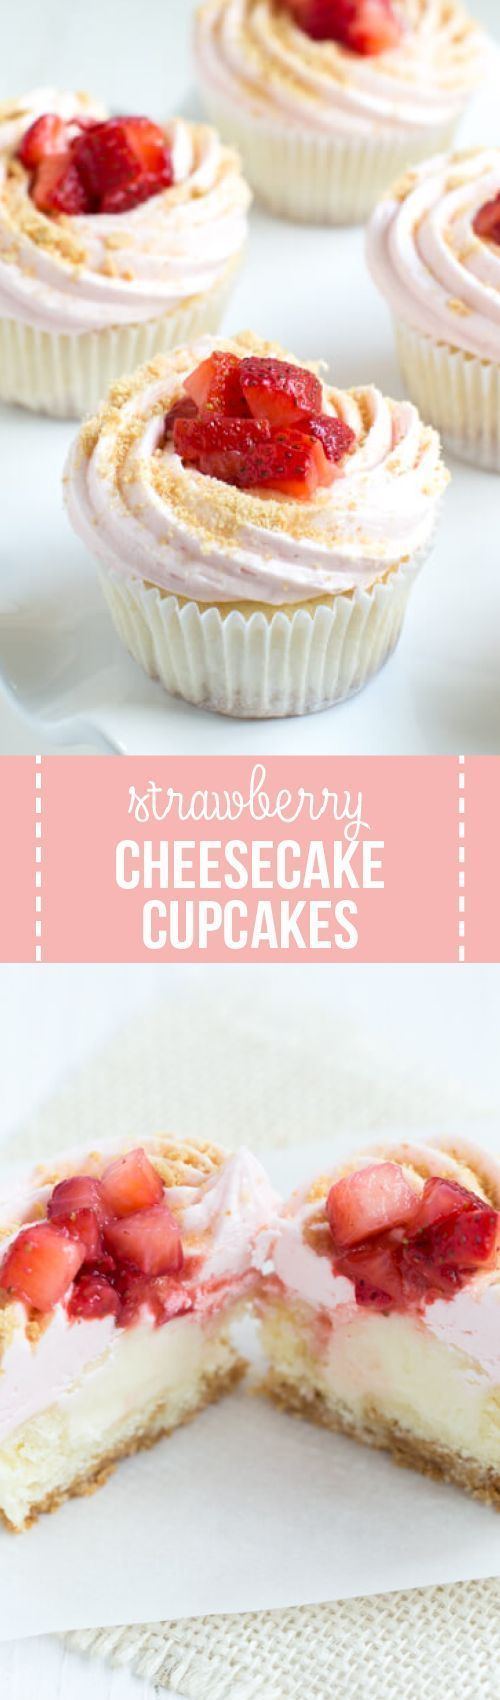 Vanilla cupcakes are stuffed with cream cheese filling and topped with strawberr Vanilla cupcakes are stuffed with cream cheese filling and topped with strawberr... -